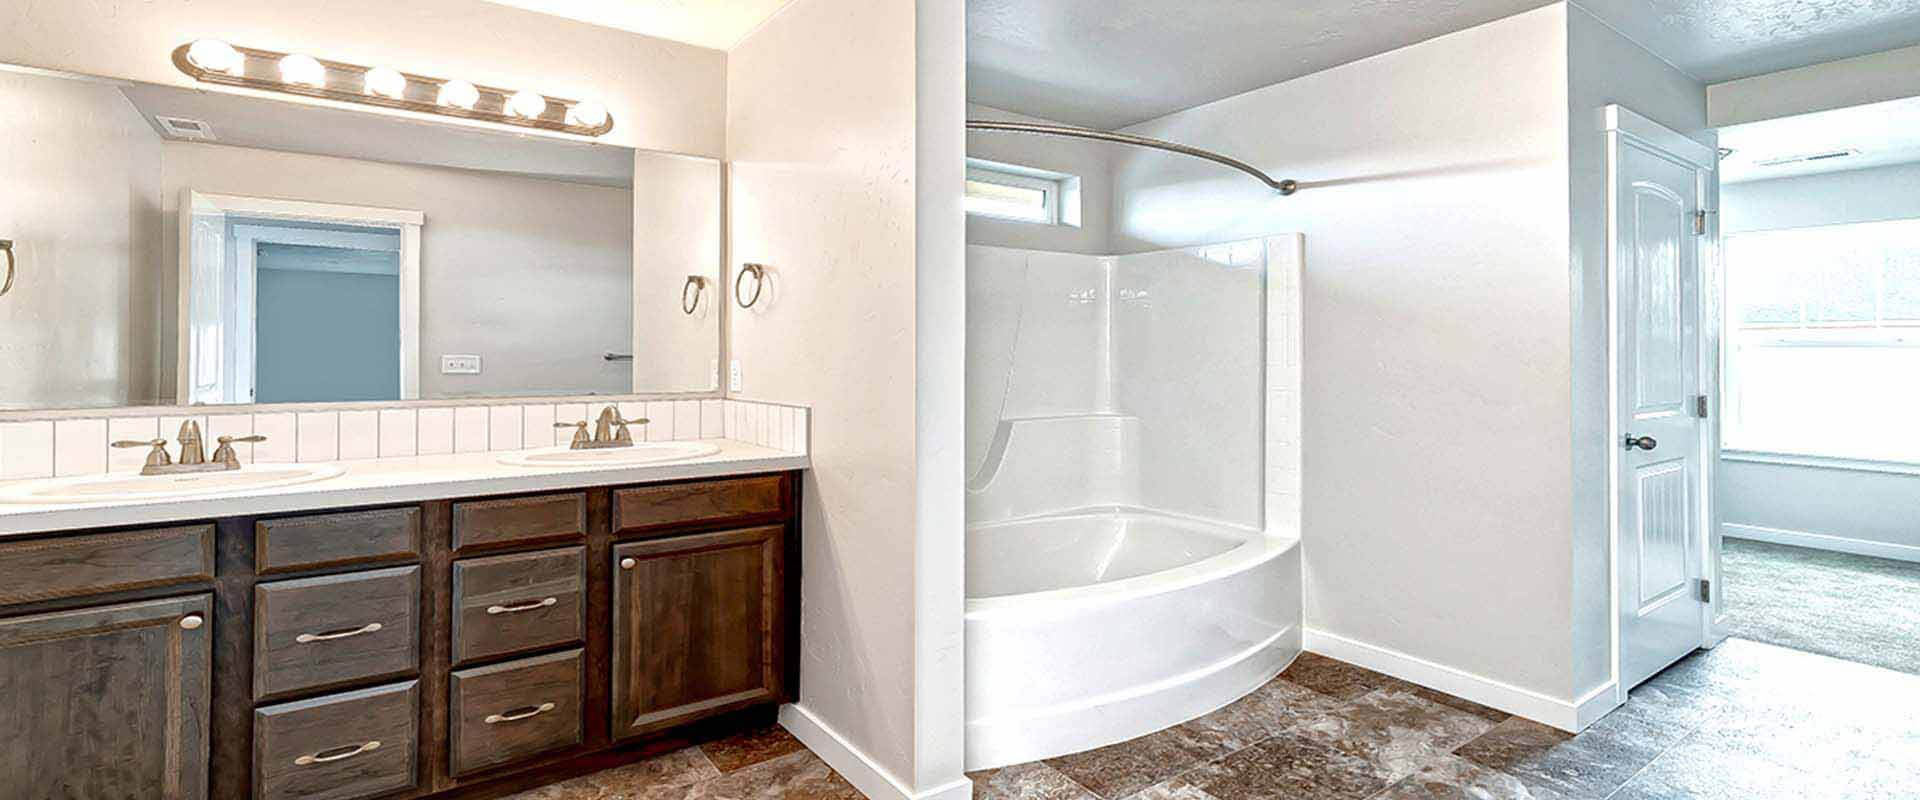 Ponderosa-new-homes-boise-idaho-hubble-homes-master-bath.jpg